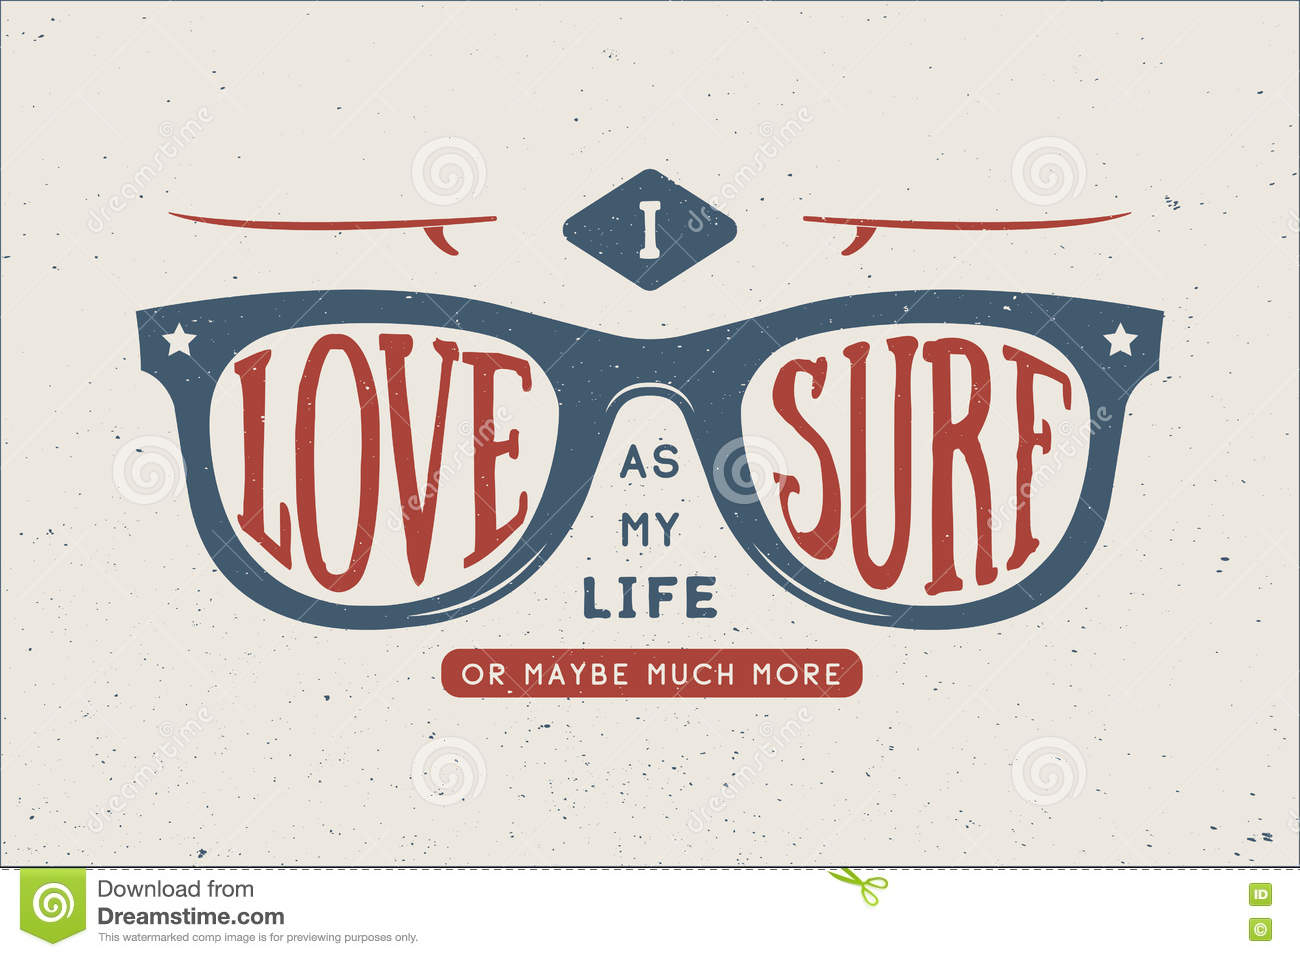 27555fa55d I love surf as my love or maybe much more. Sunglasses with surfboards in  retro style with quote. Graphic Design. Vector Illustration.